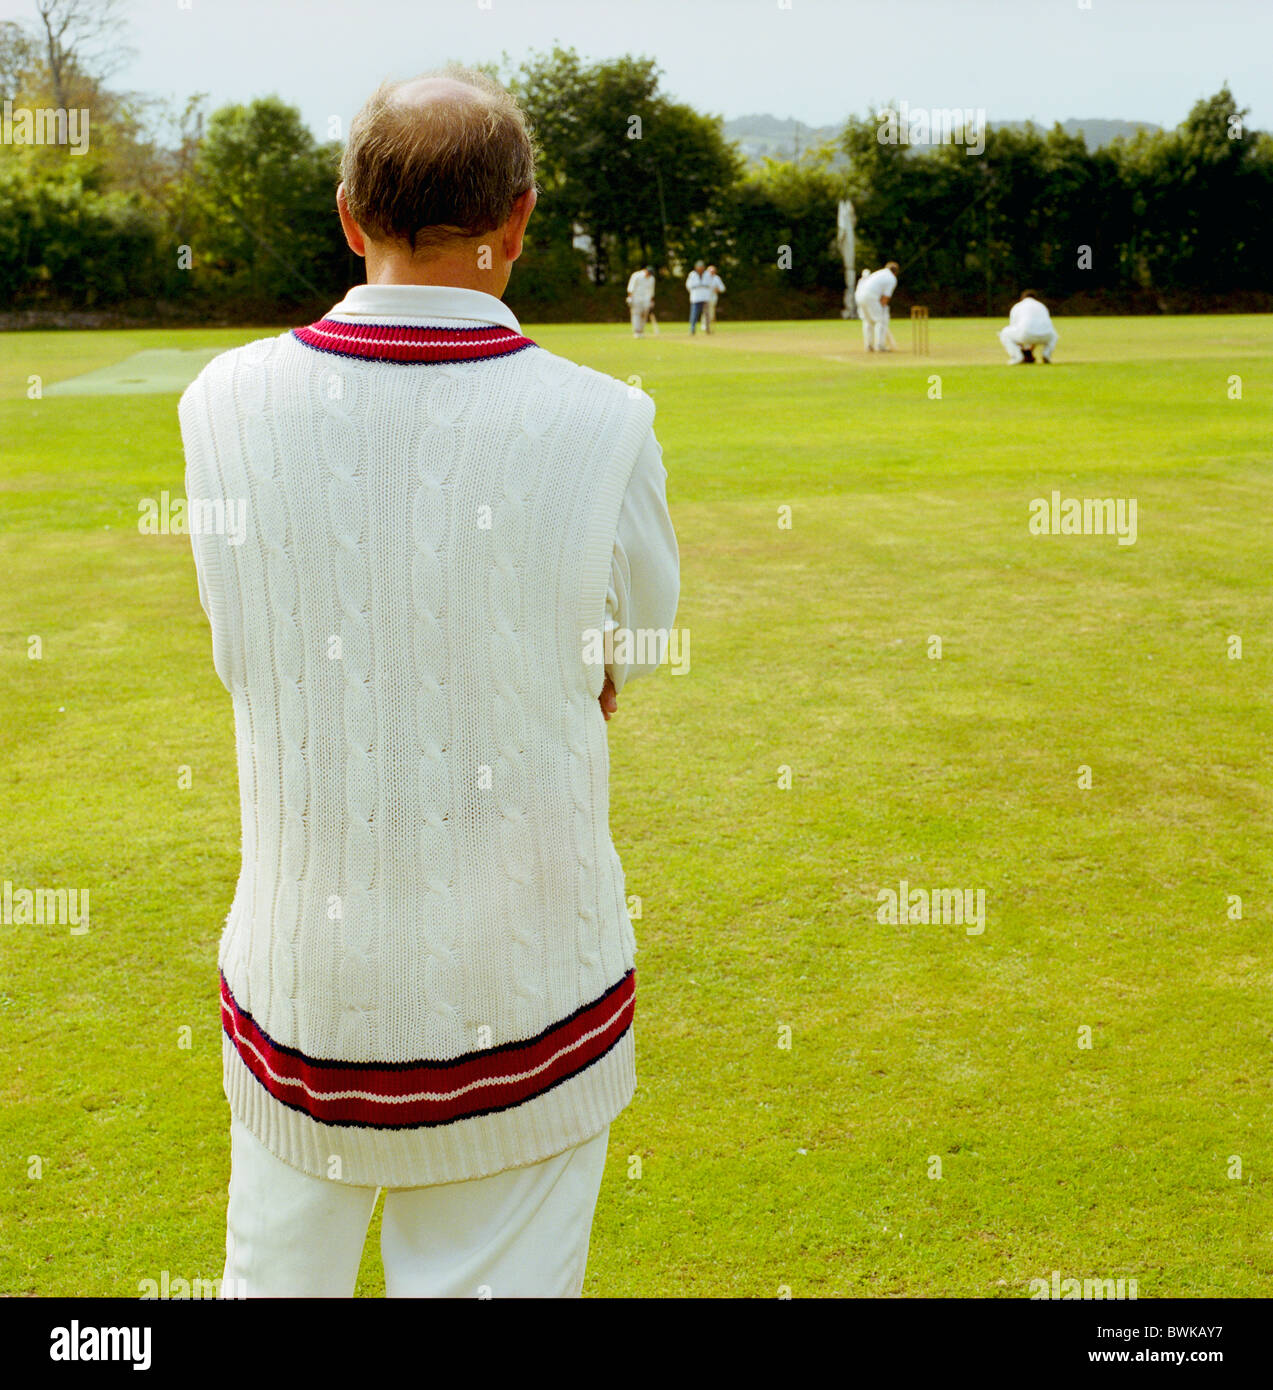 Man fielding in cricket match, in white sports outfit - Stock Image